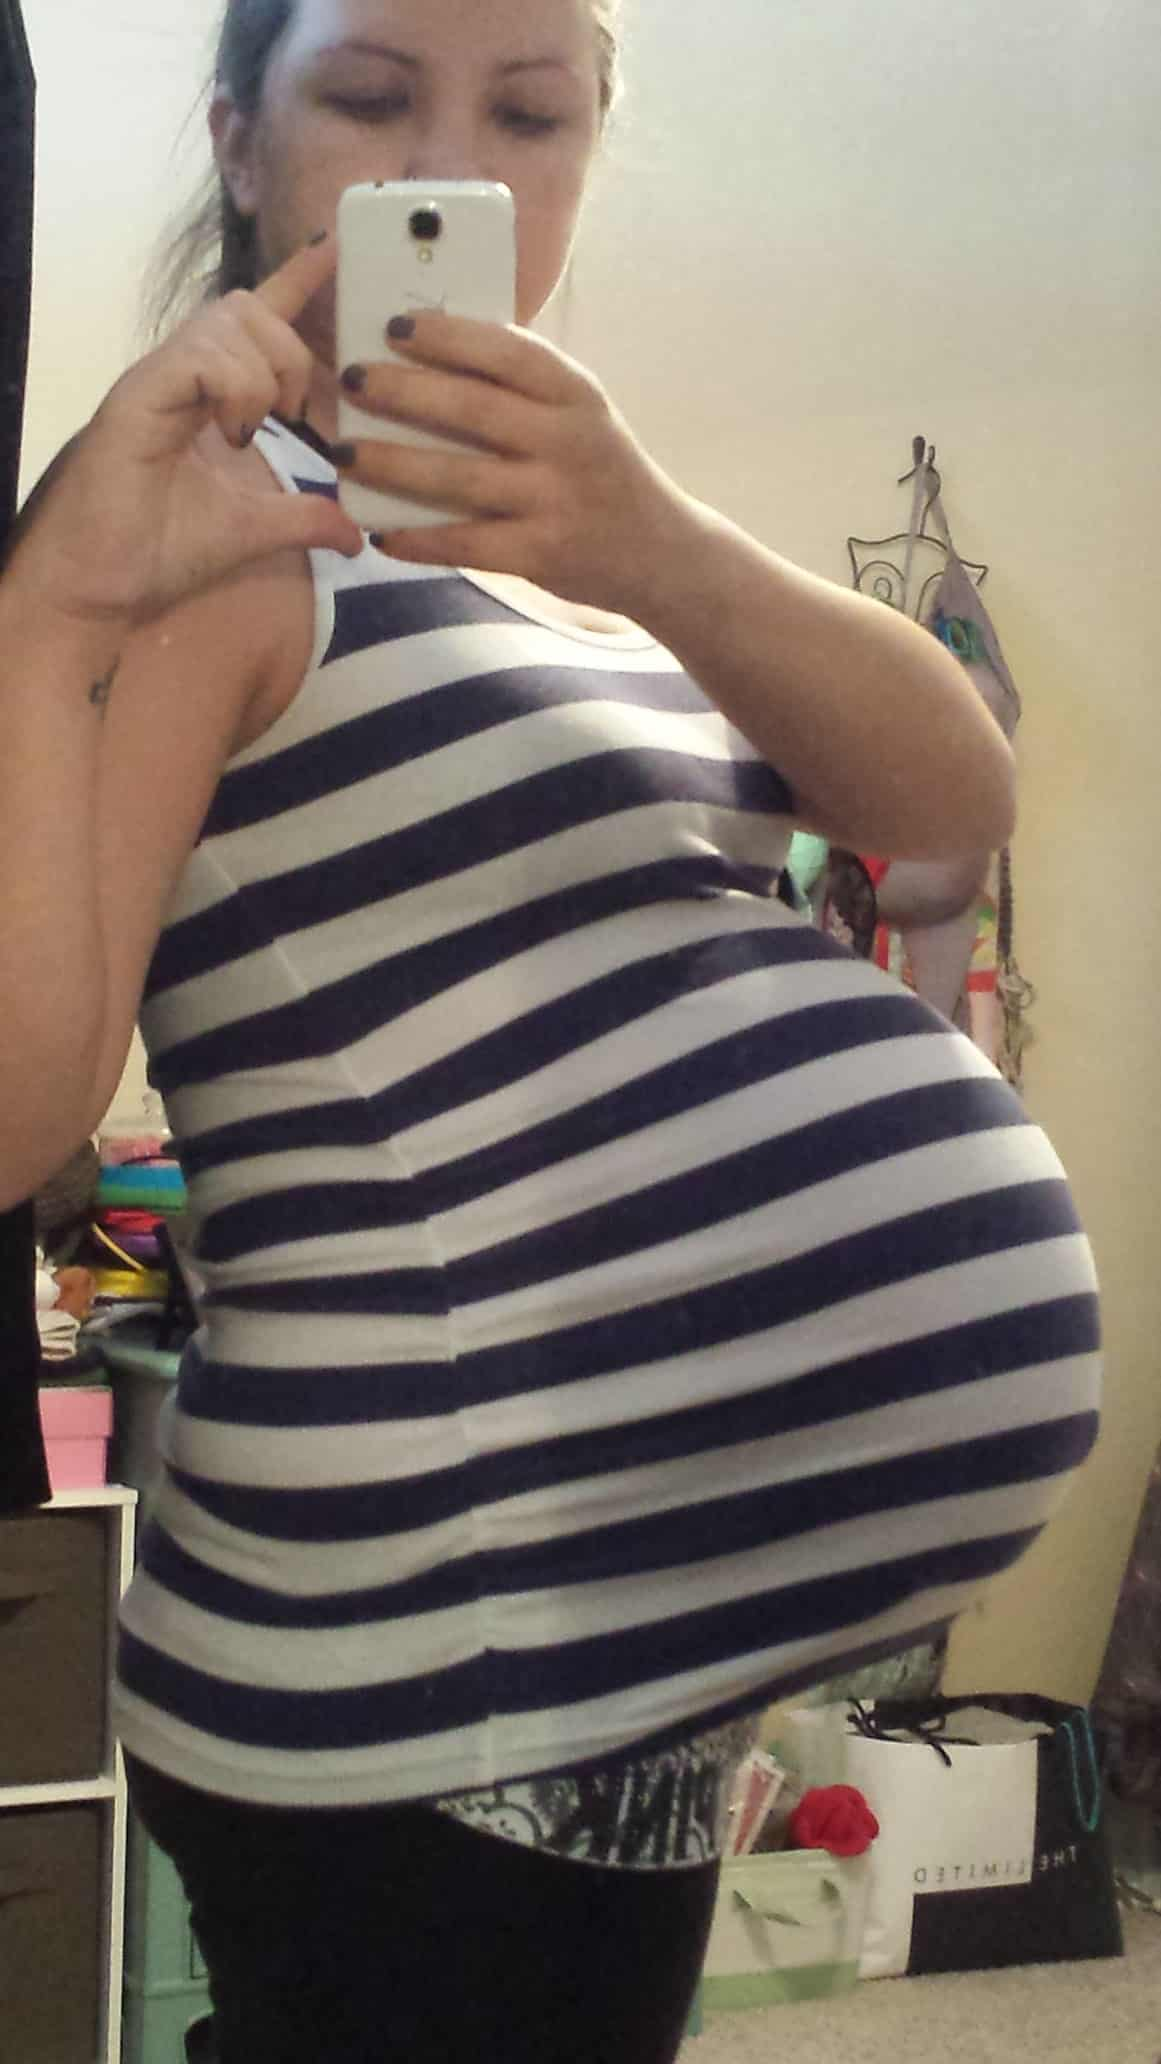 38 weeks pregnant with twins